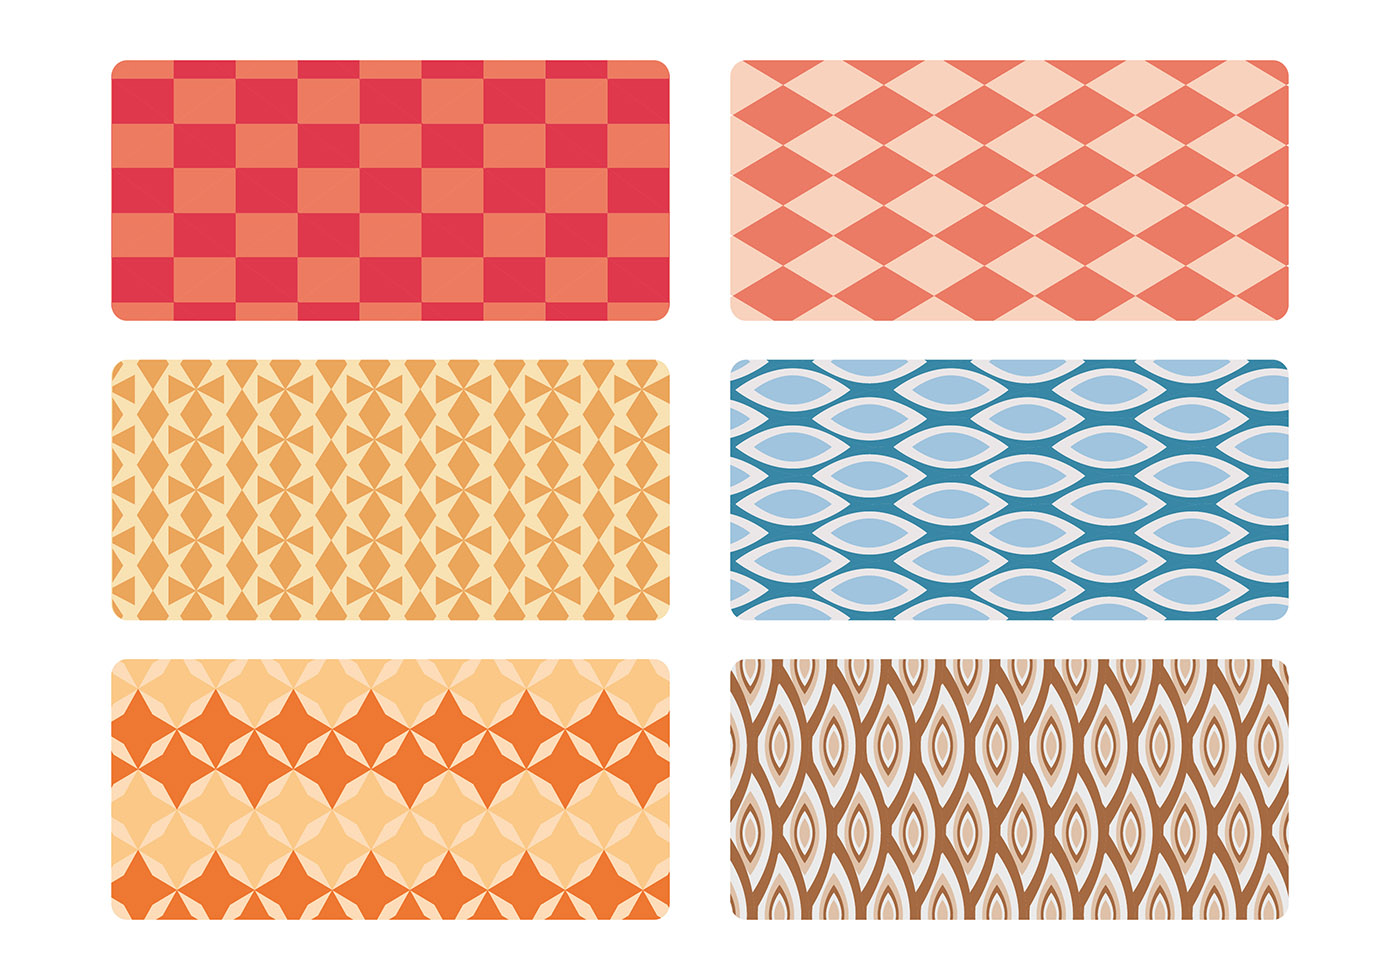 modern living room furnitures furniture tables mid century pattern vector set - download free art ...